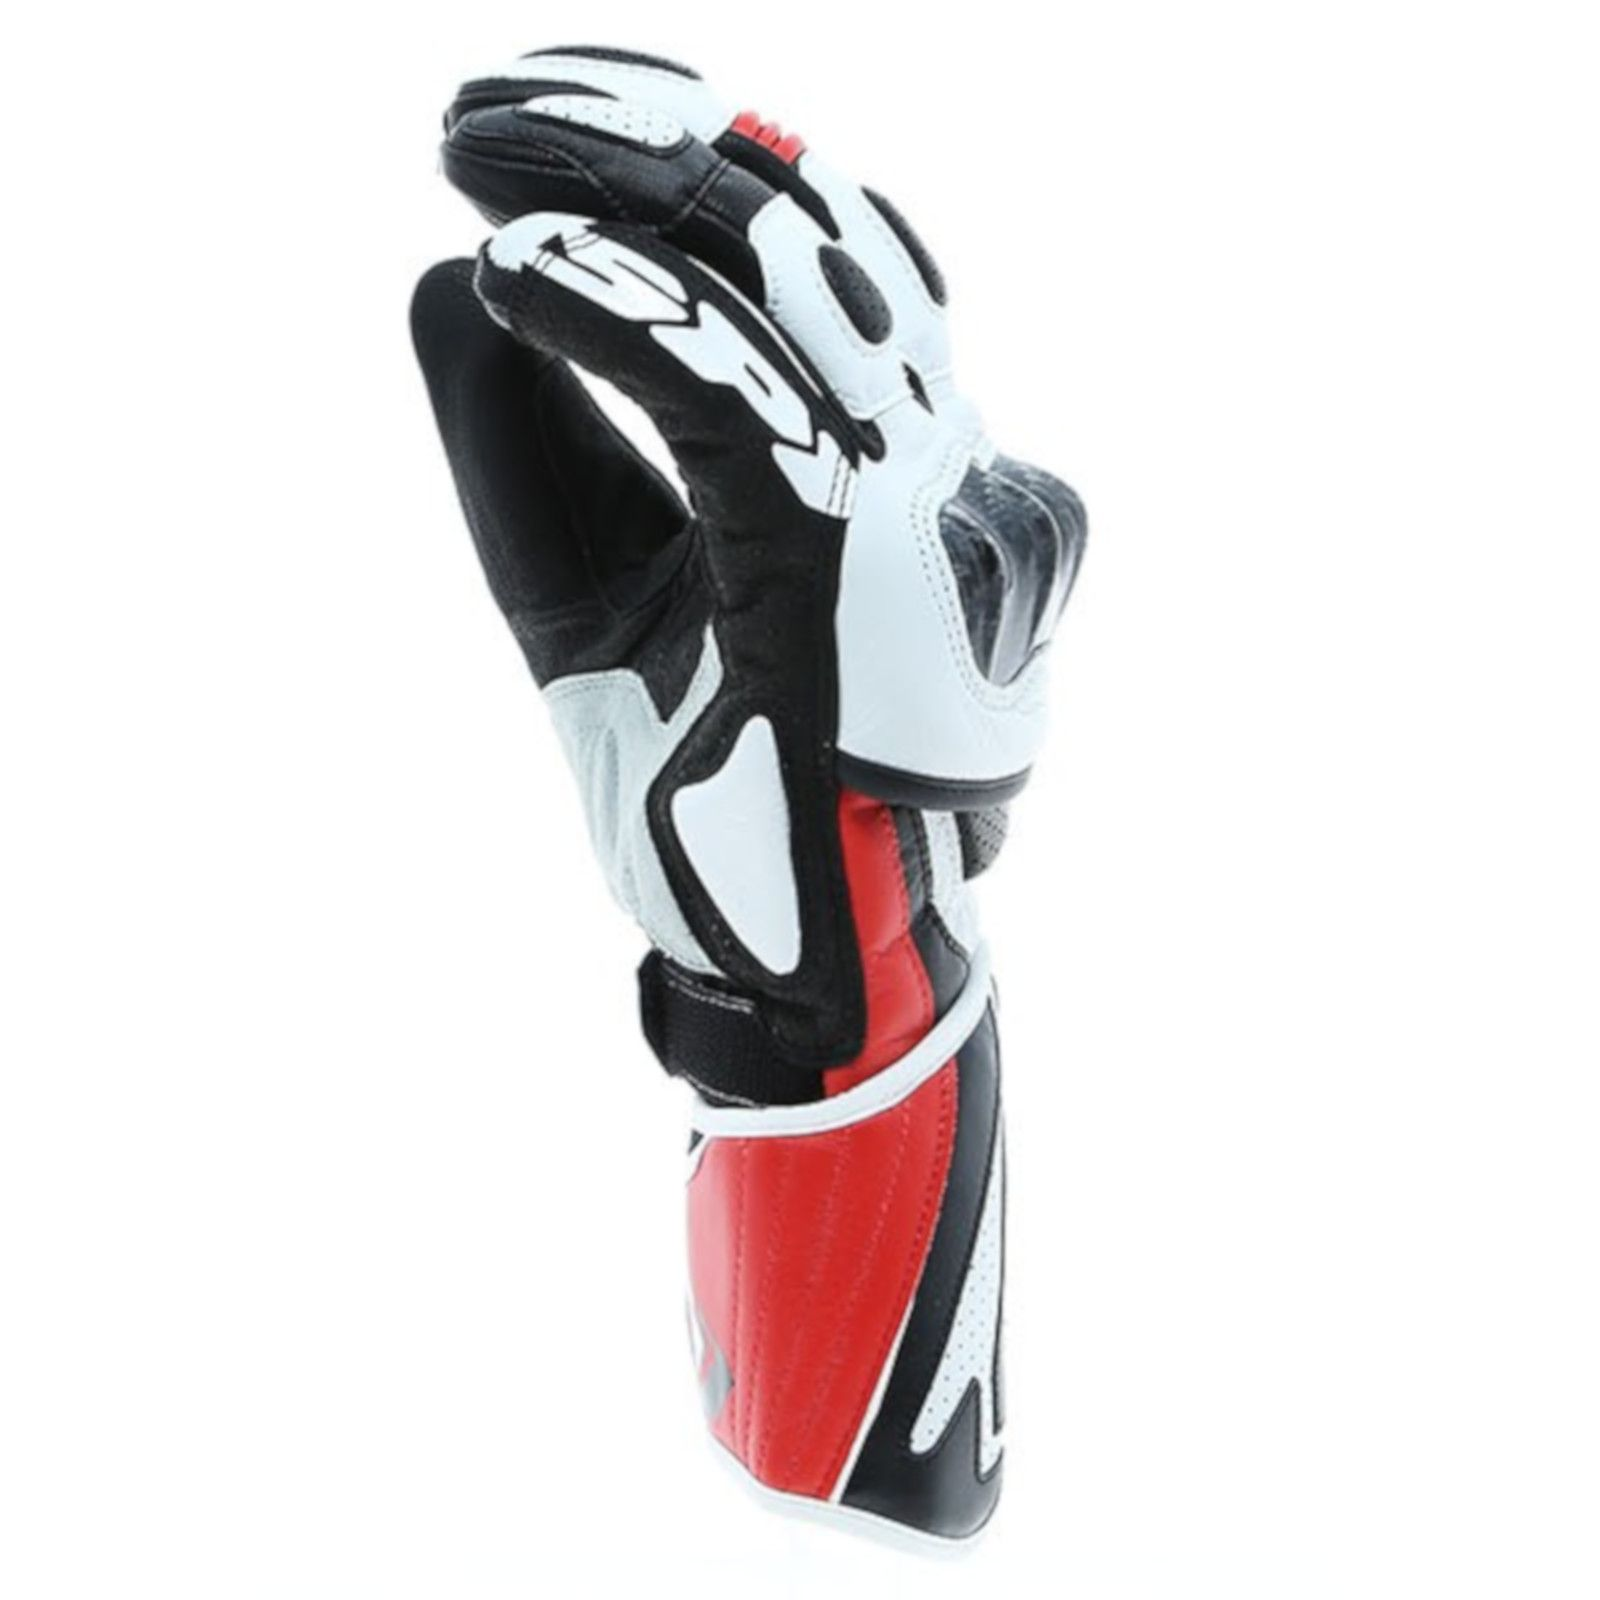 Sport Gloves Uk: Spidi Carbo 1 Motorcycle Motorbike Leather Racing Sport